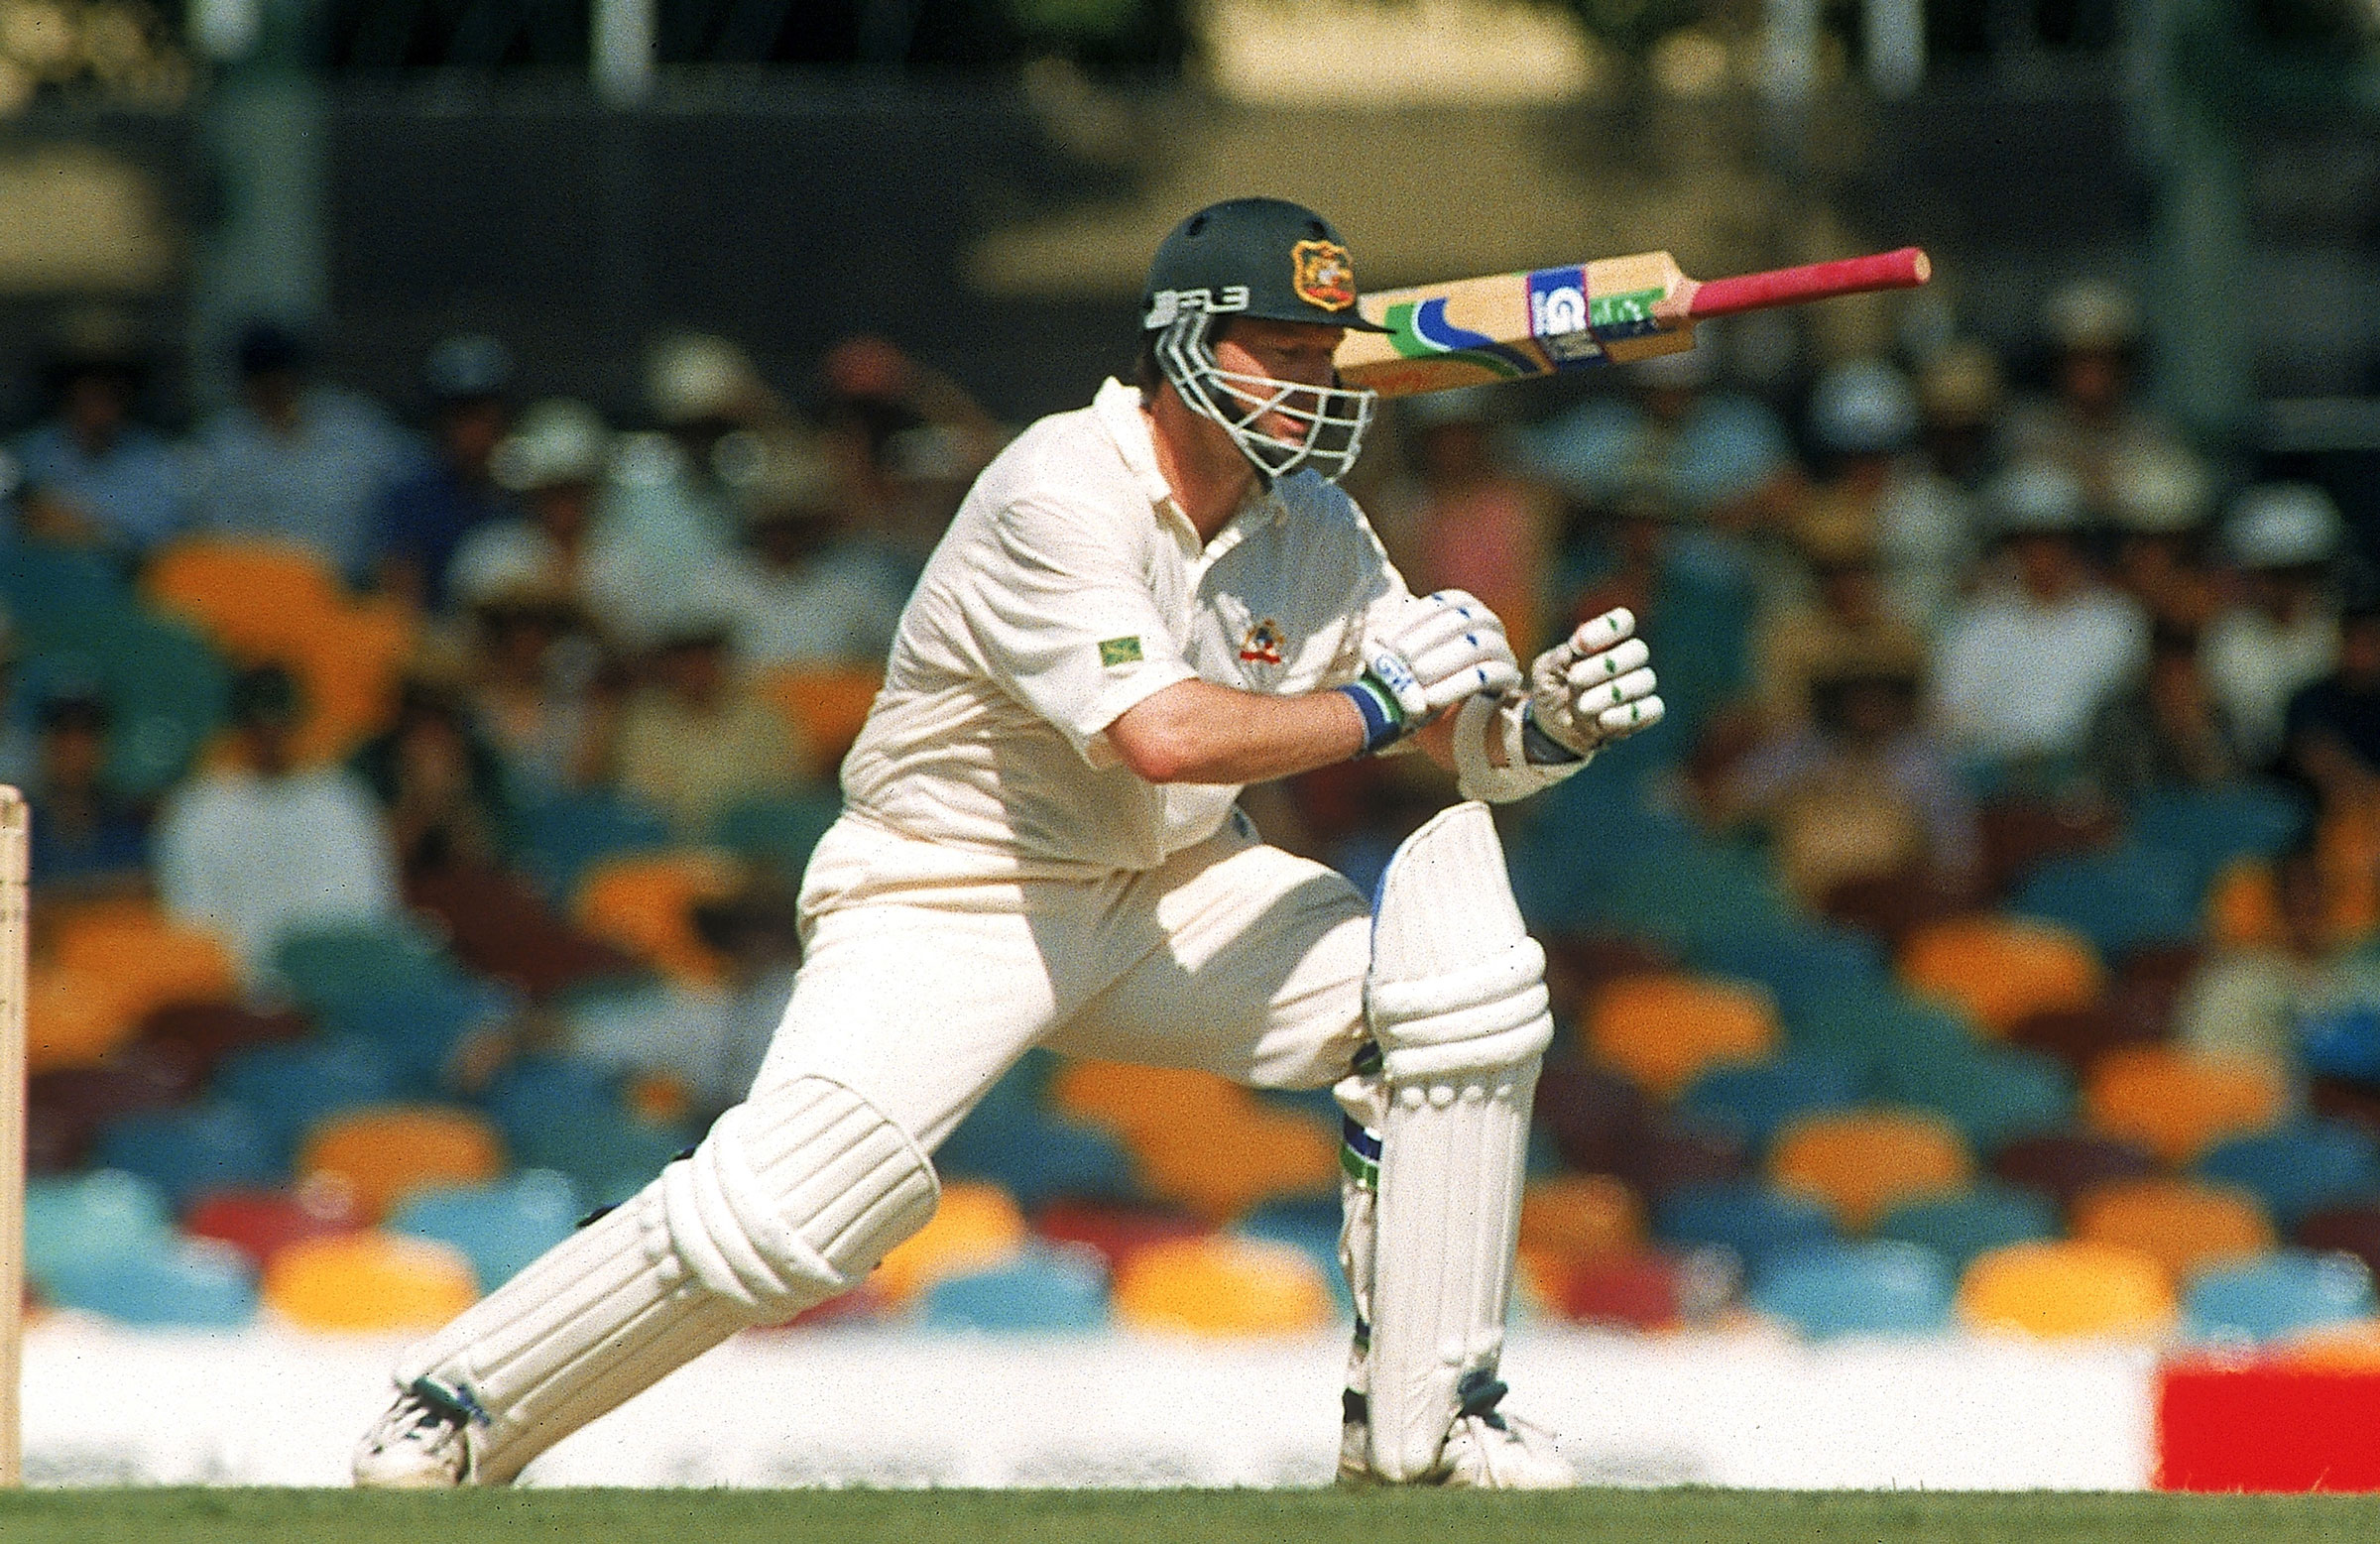 Steve Waugh hit a brilliant century against Pakistan in 1995 // Getty Images